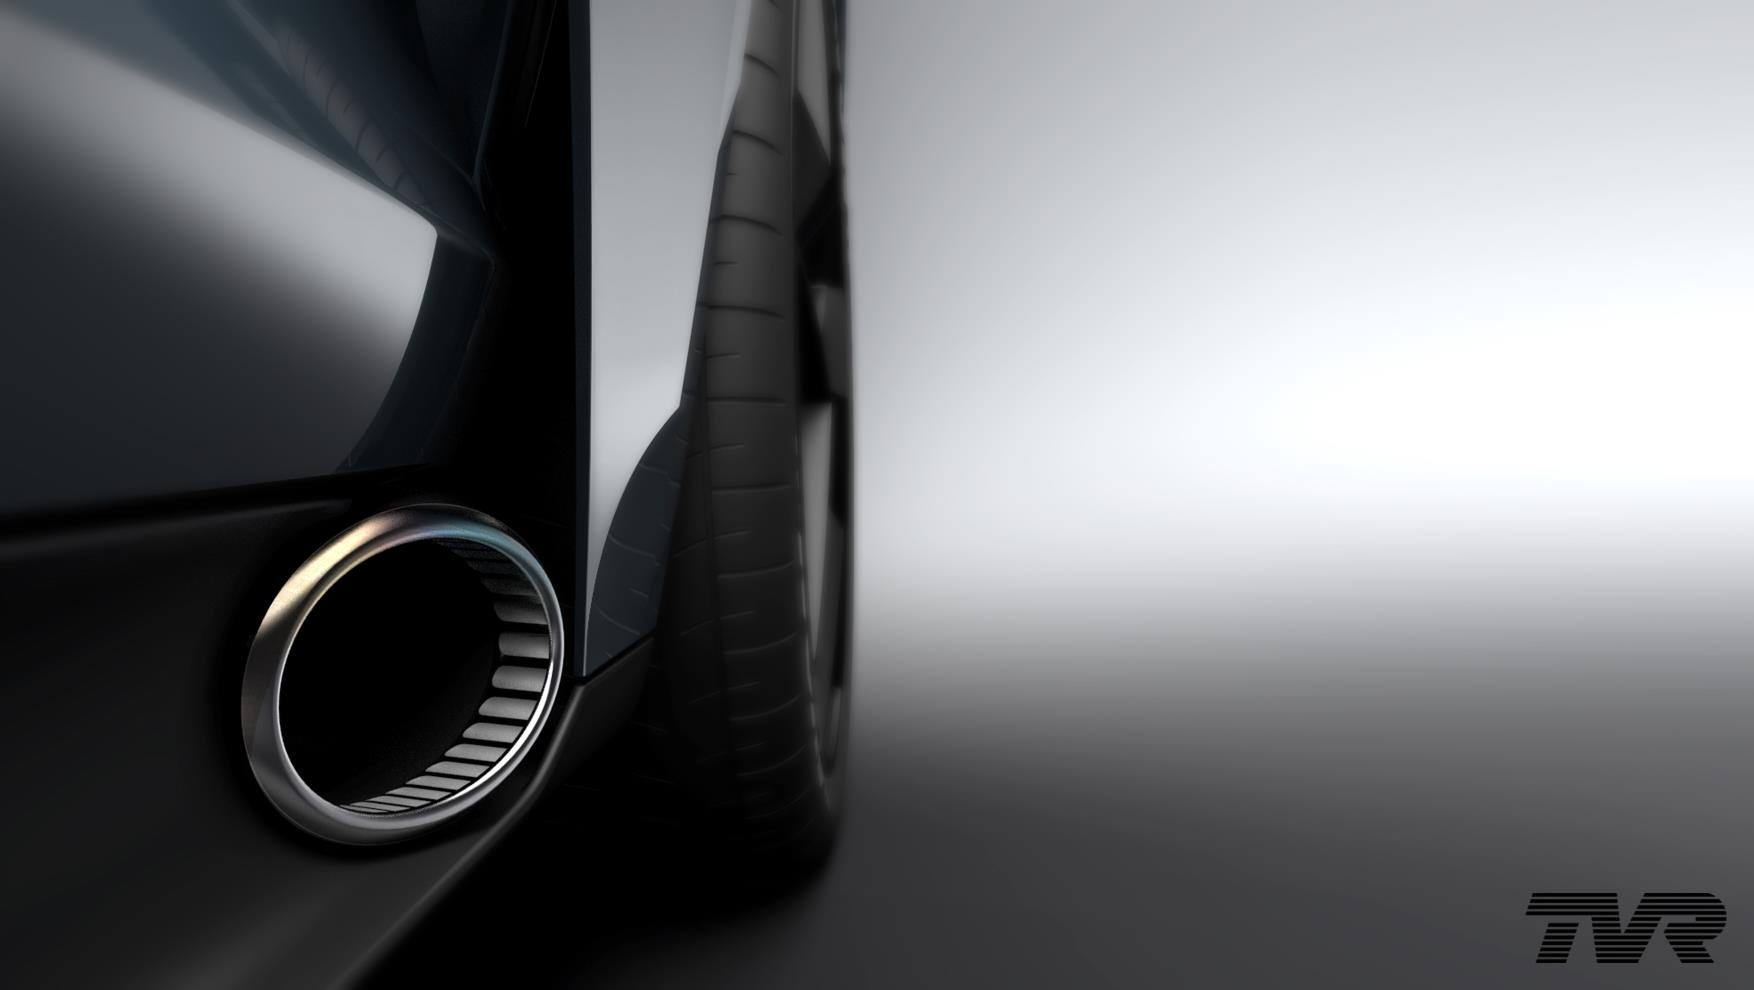 Long Awaited New TVR To Be Launched At 2017 Goodwood Revival